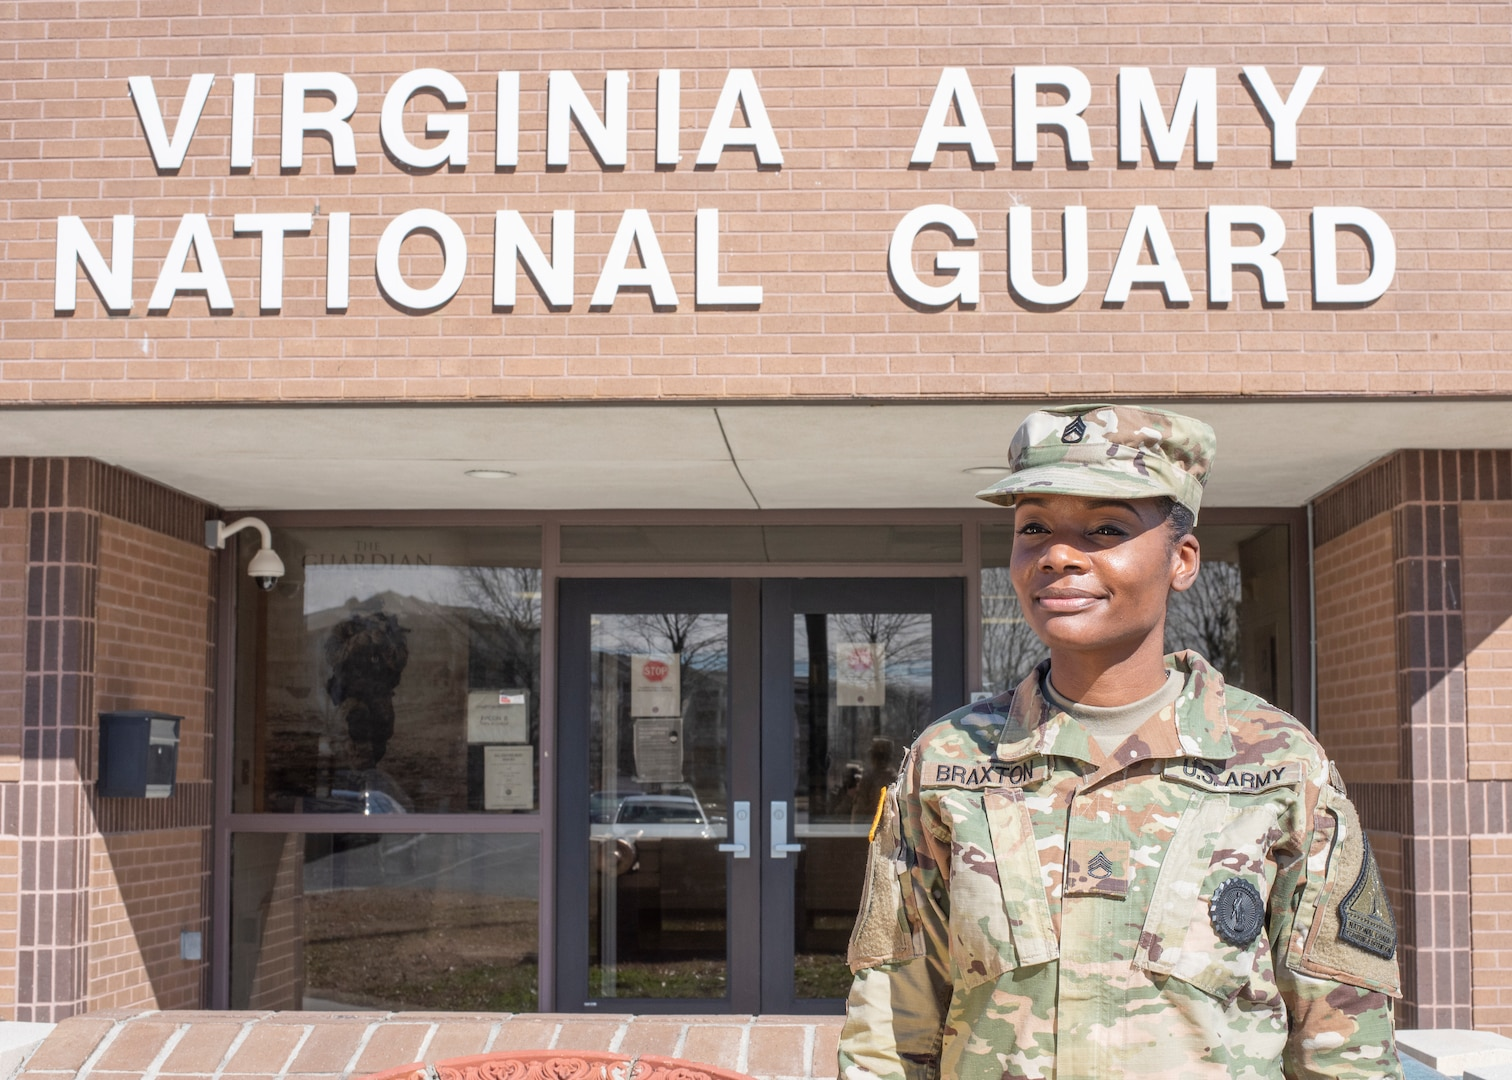 Virginia Army National Guard recruiter Staff Sgt. Monisha Braxton assigned to the Recruiting and Retention Battalion shares stories about her military experience and the commitments she made to herself Feb 24, 2021, in Hampton, Virginia. With 8 years of service in the National Guard, Braxton stresses the importance of sticking to your goals. (U.S. Army National Guard photo by Staff Sgt. Lisa M. Sadler)